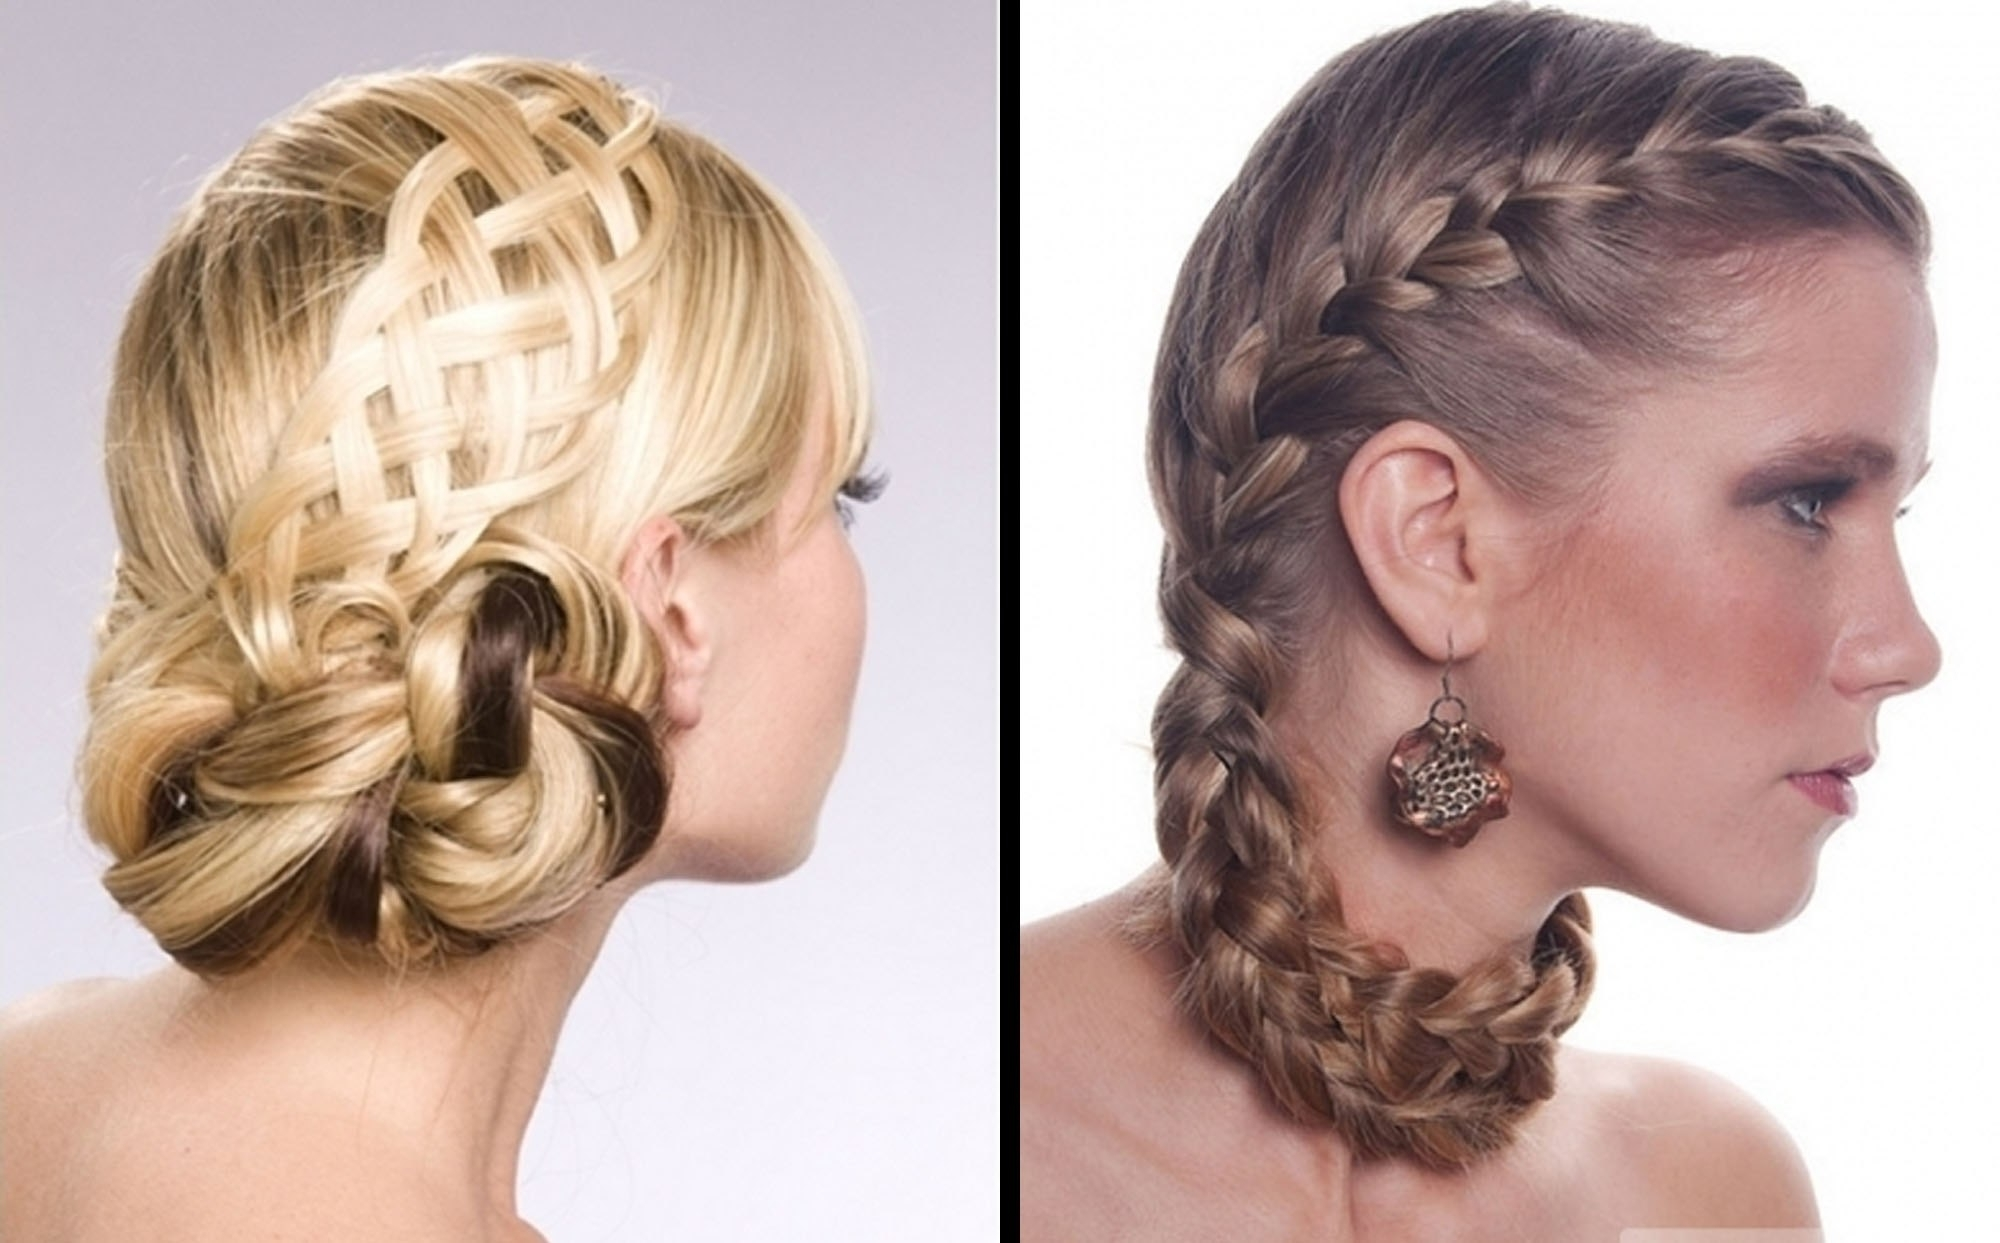 Hairstyles Prom For Short Hair Easy | Medium Hair Styles Ideas – 35491 Regarding Medium Hair Prom Updo Hairstyles (View 5 of 15)